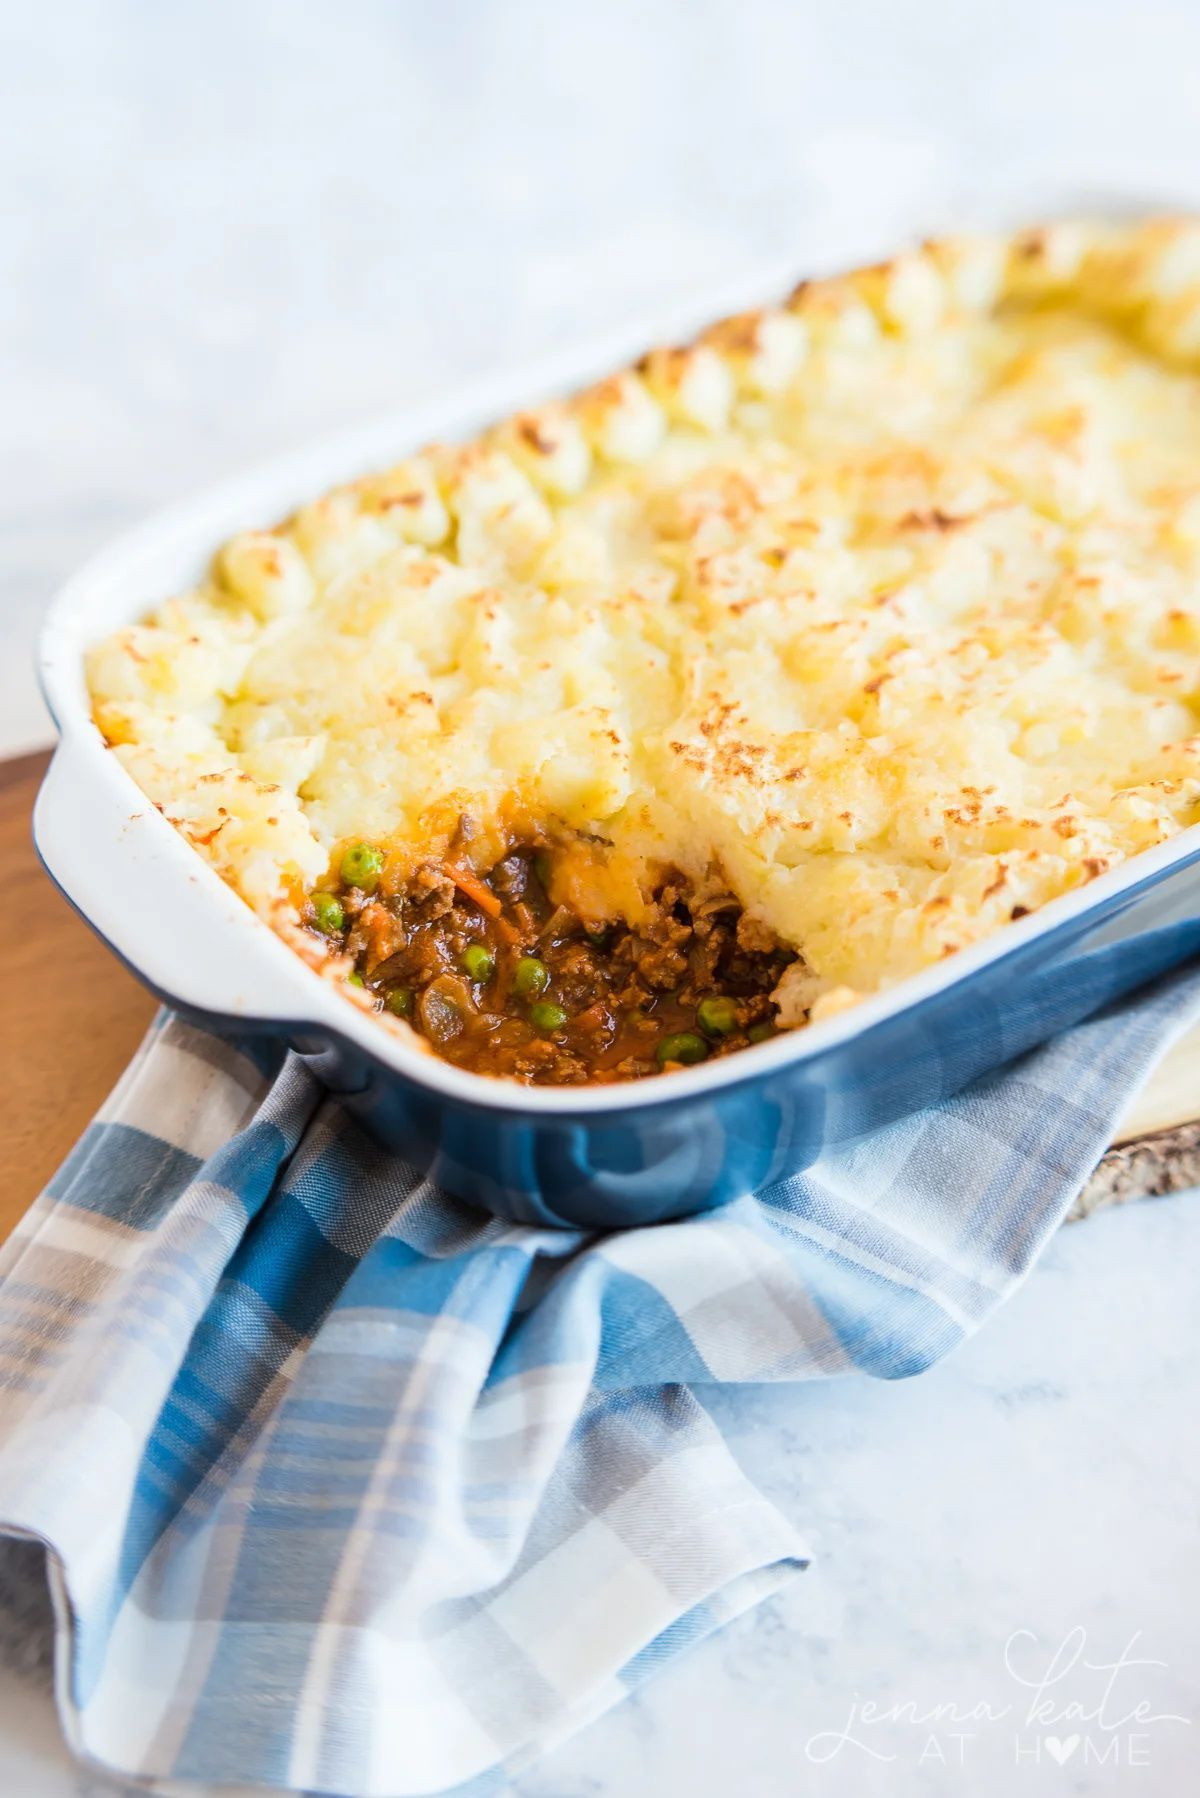 Irish Shepherd S Pie Recipe In 2020 Recipes Shepherds Pie Irish Shepherd S Pie